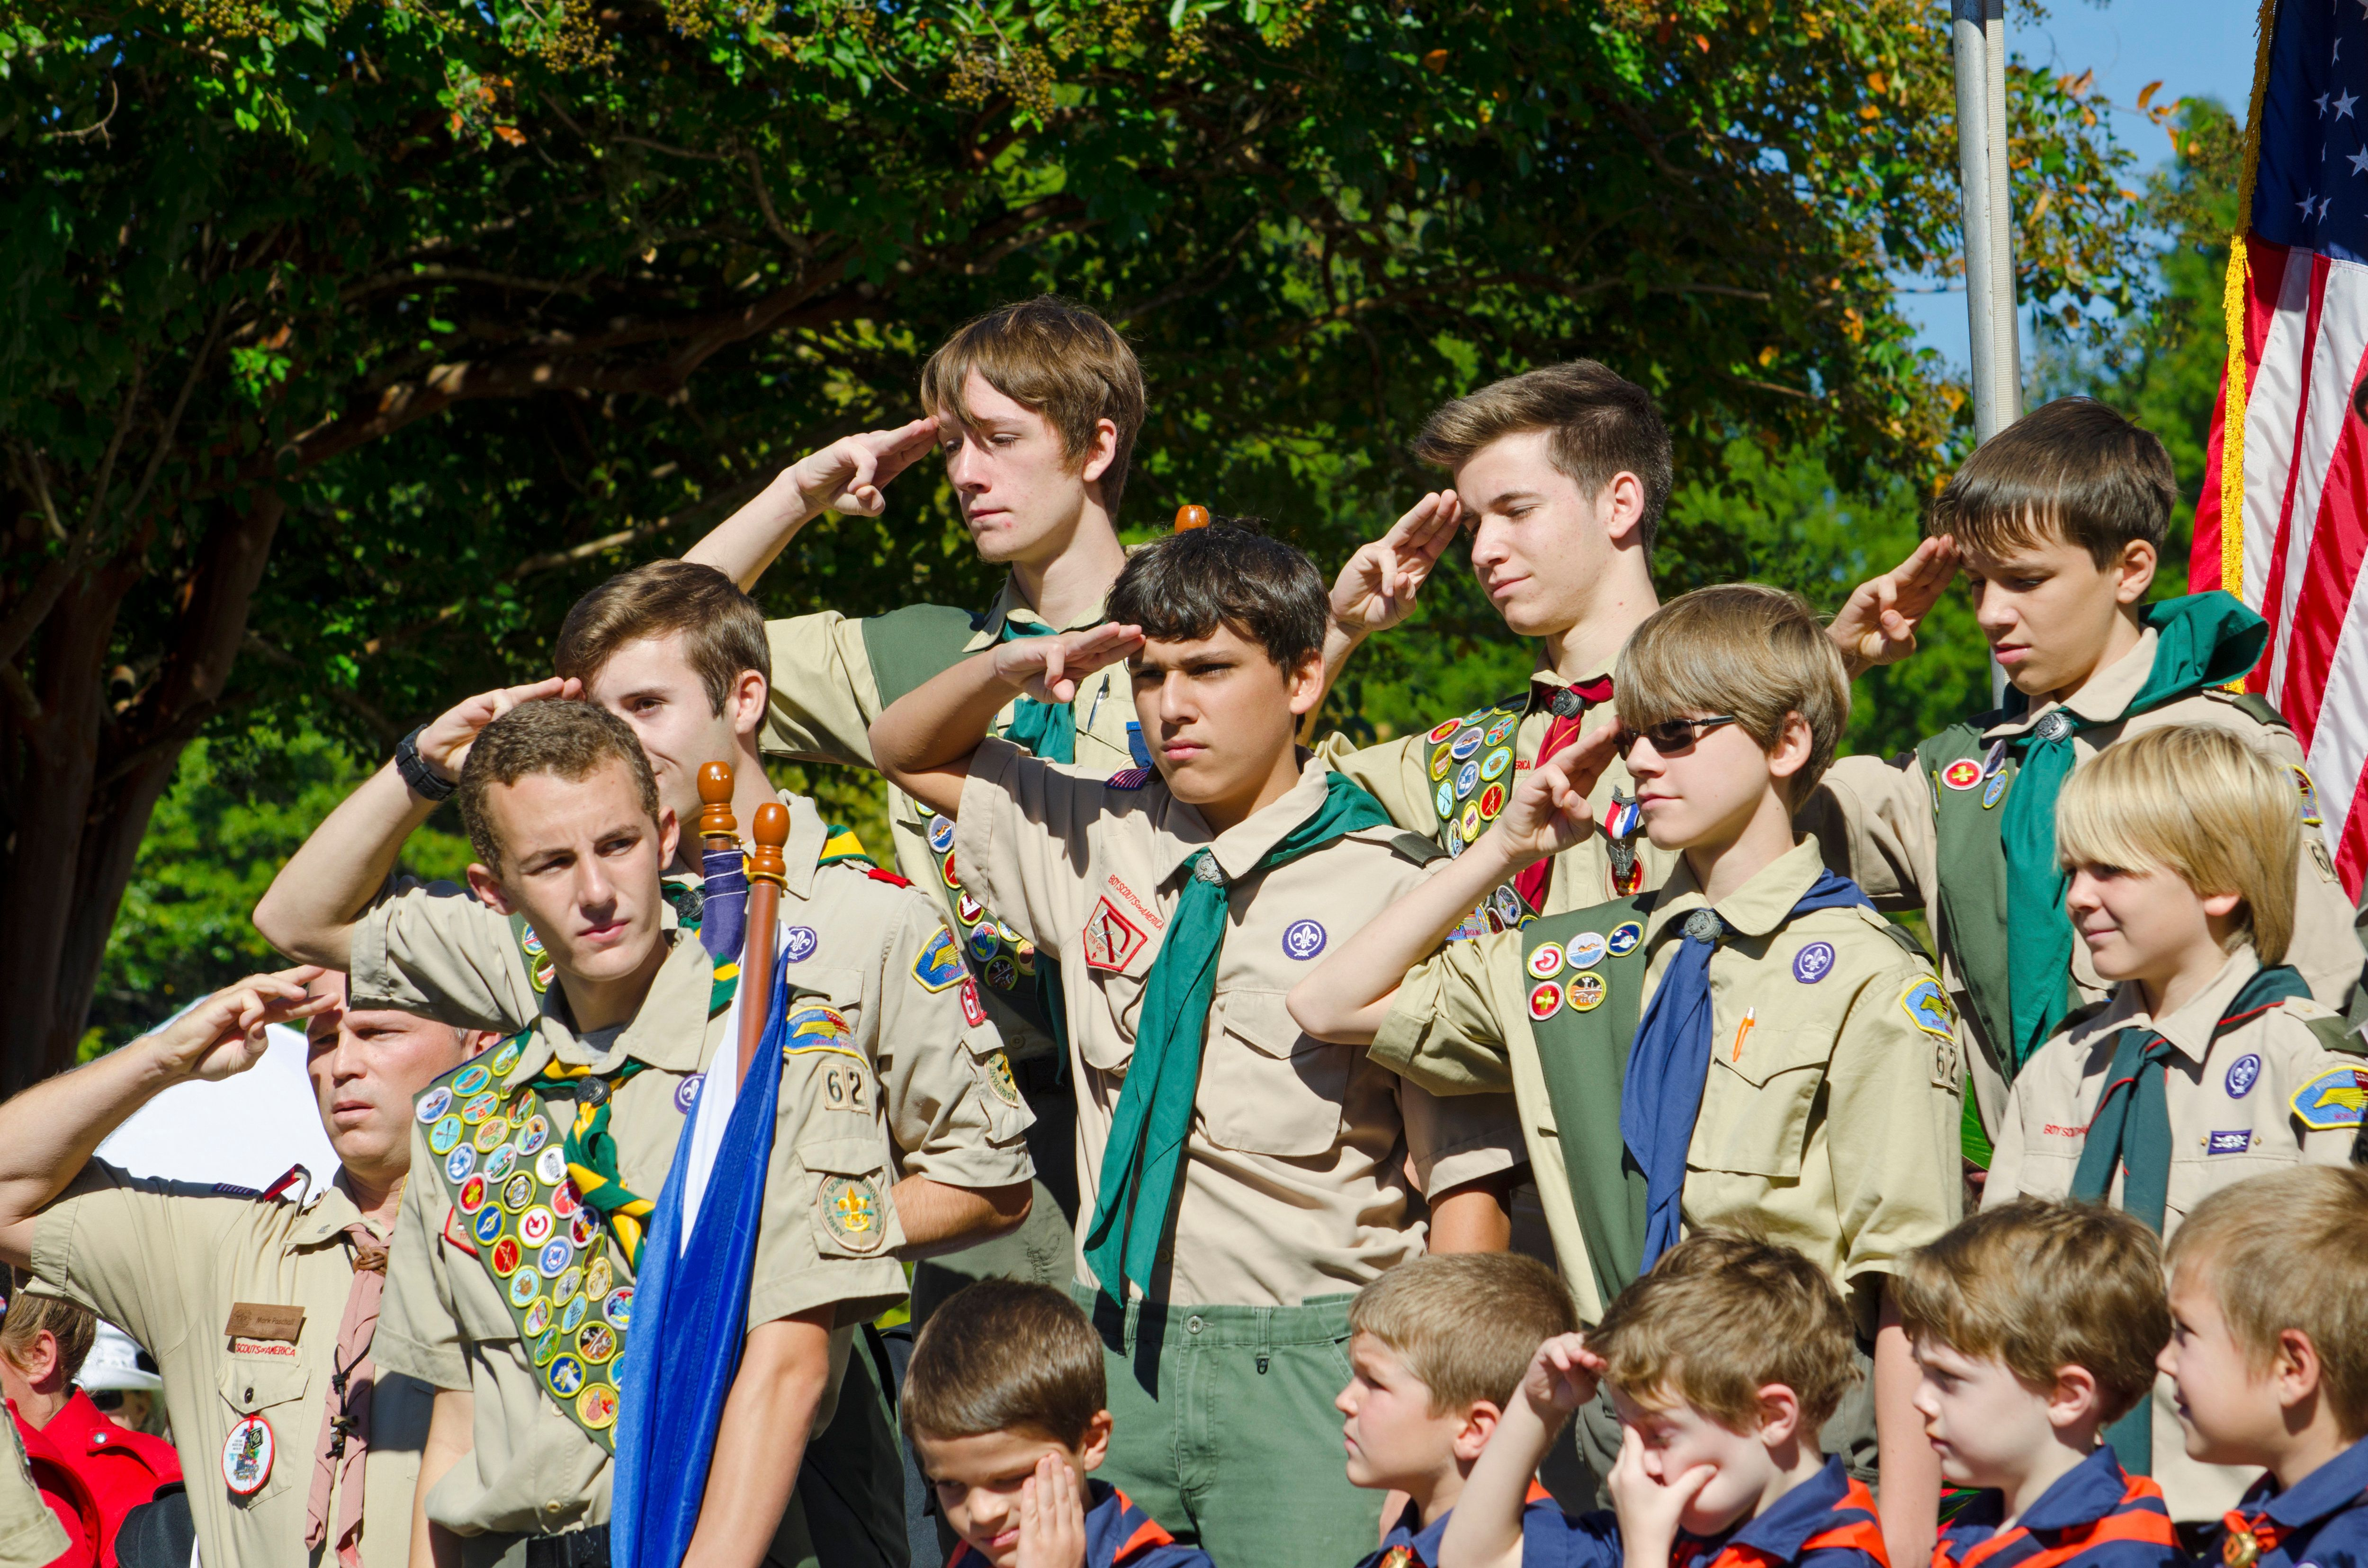 The Mormons broke with the boy scouts